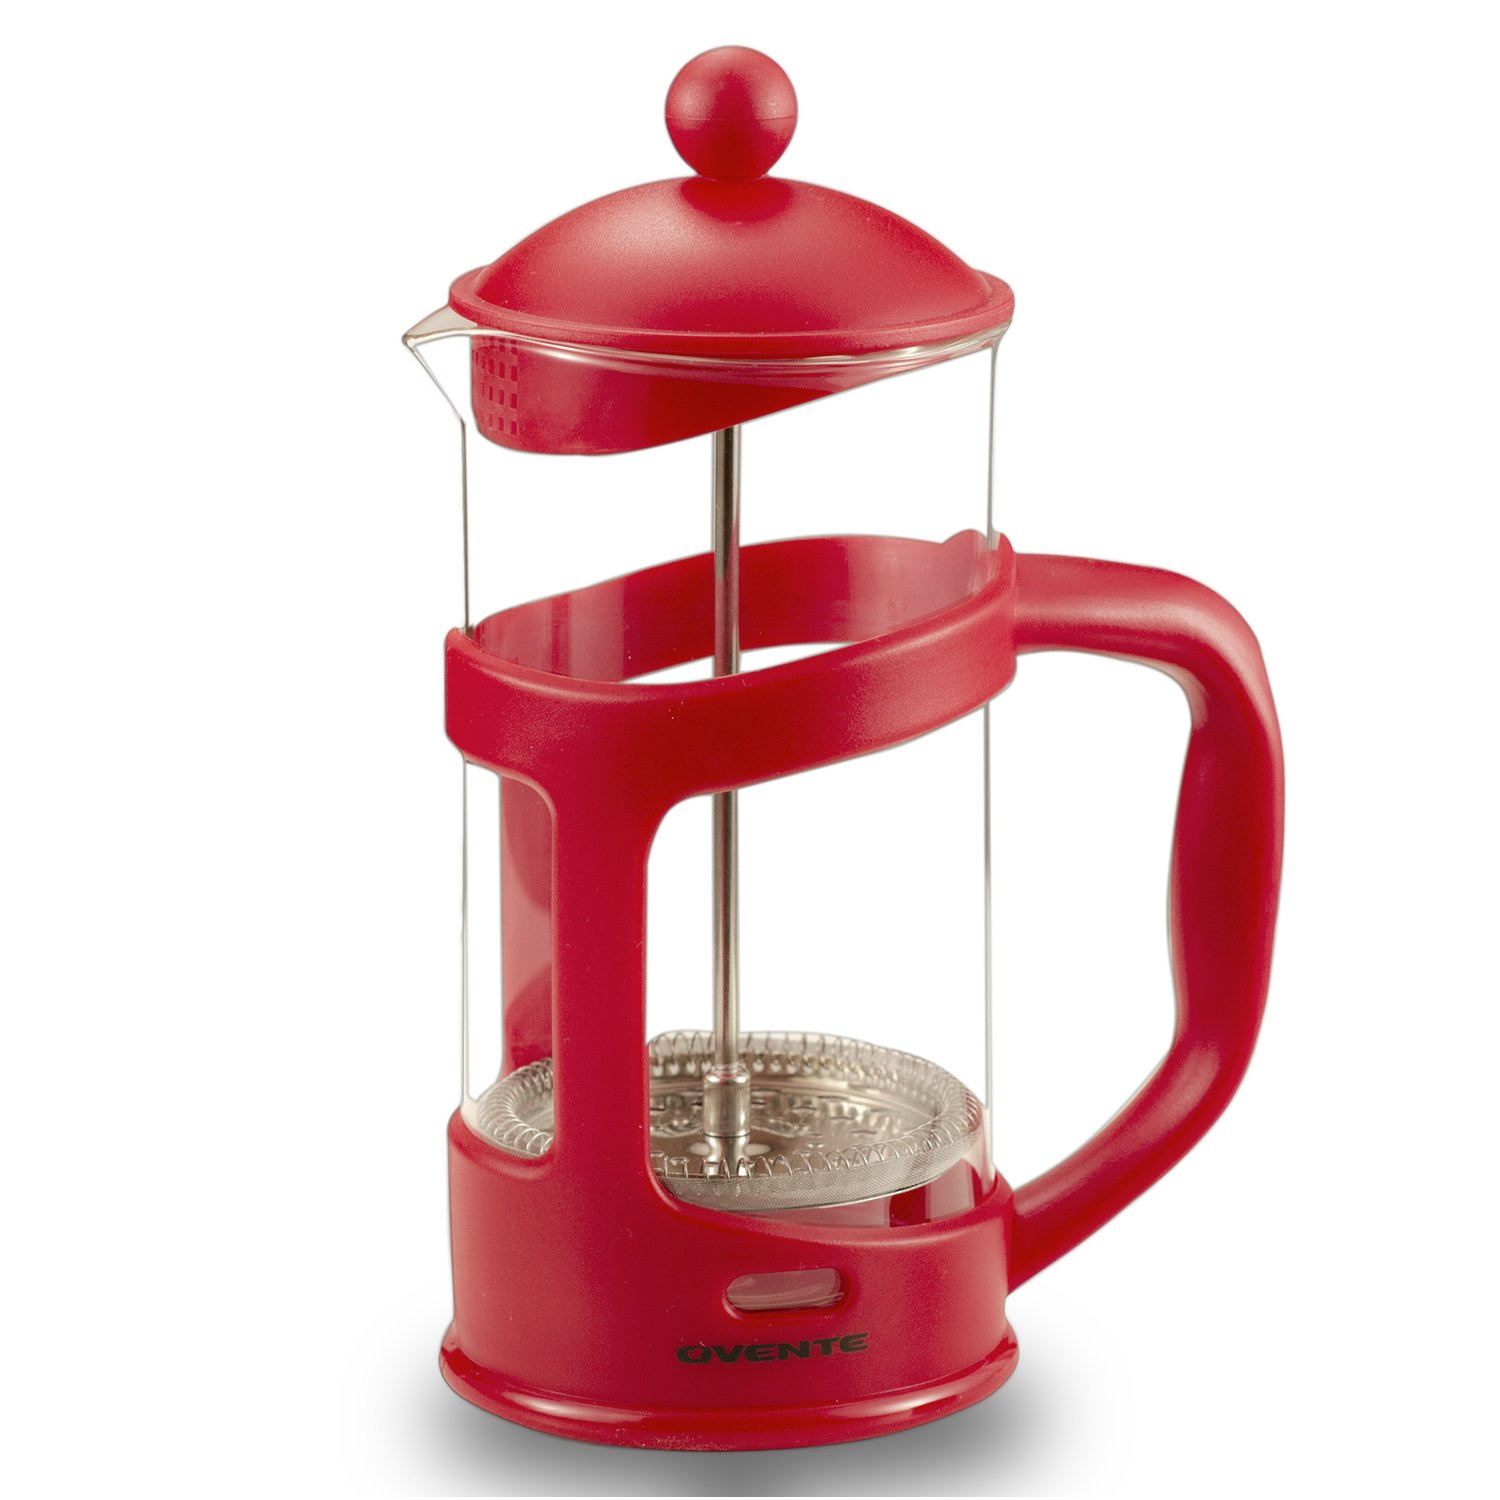 French Press Coffee Maker Meijer : Ovente FPT34F French Press Coffee Maker Amazon Lightning Deal Picks Coupon Karma